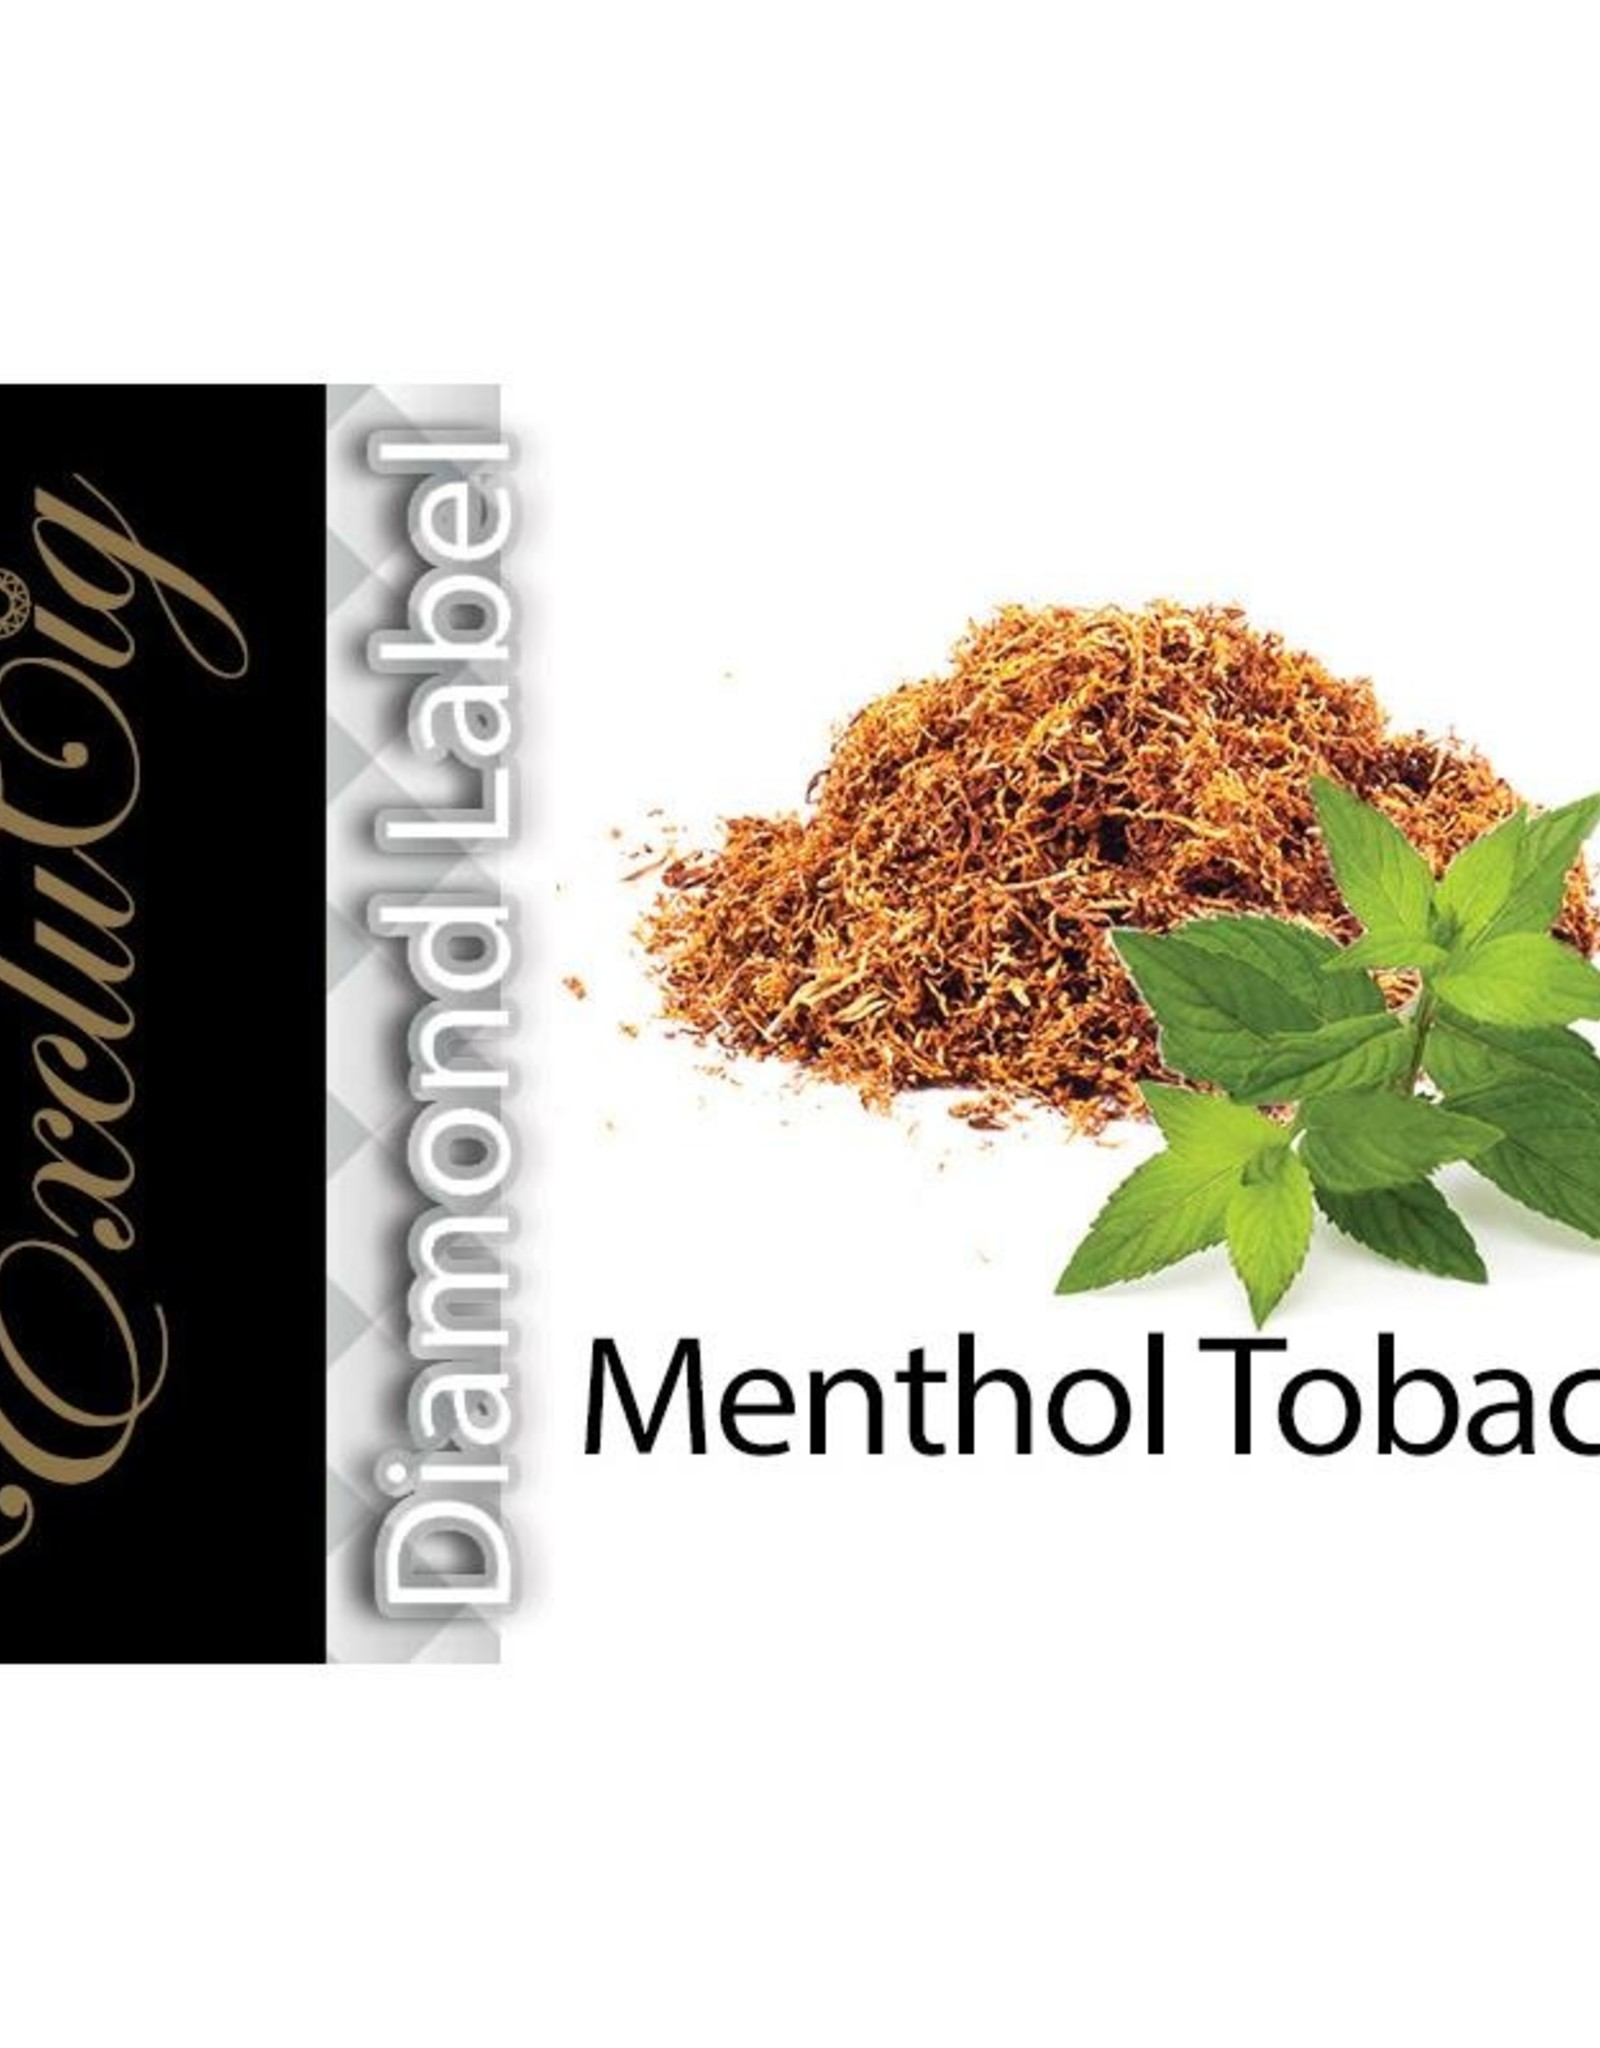 Exclucig Exclucig Diamond Label E-liquid Menthol Tobacco 3 mg Nicotine